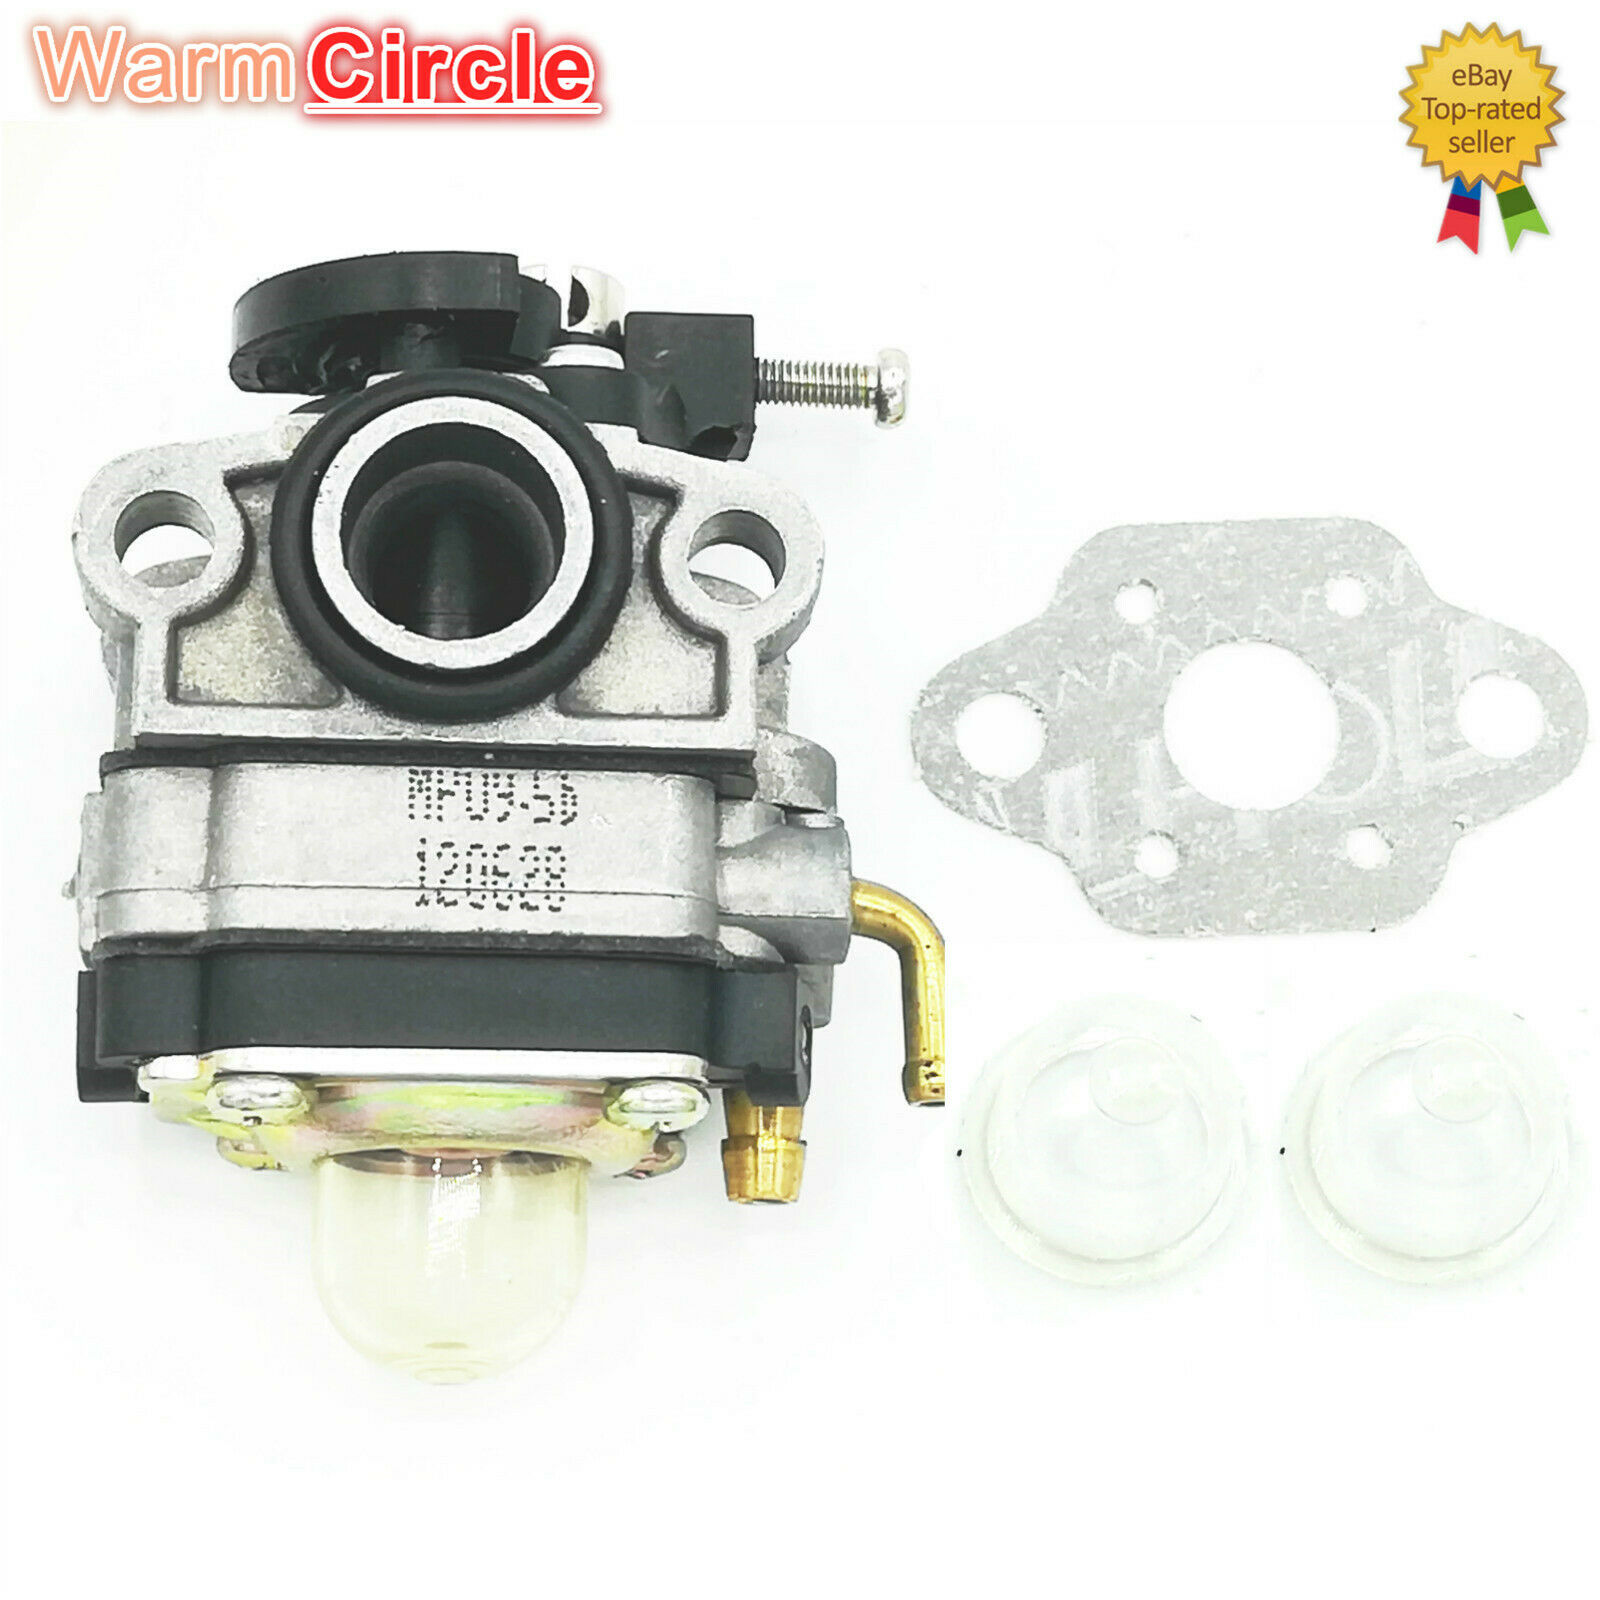 Carburetor Carb for B/&S Briggs and Stratton 19.5hp 31P677 engine w// part 595535